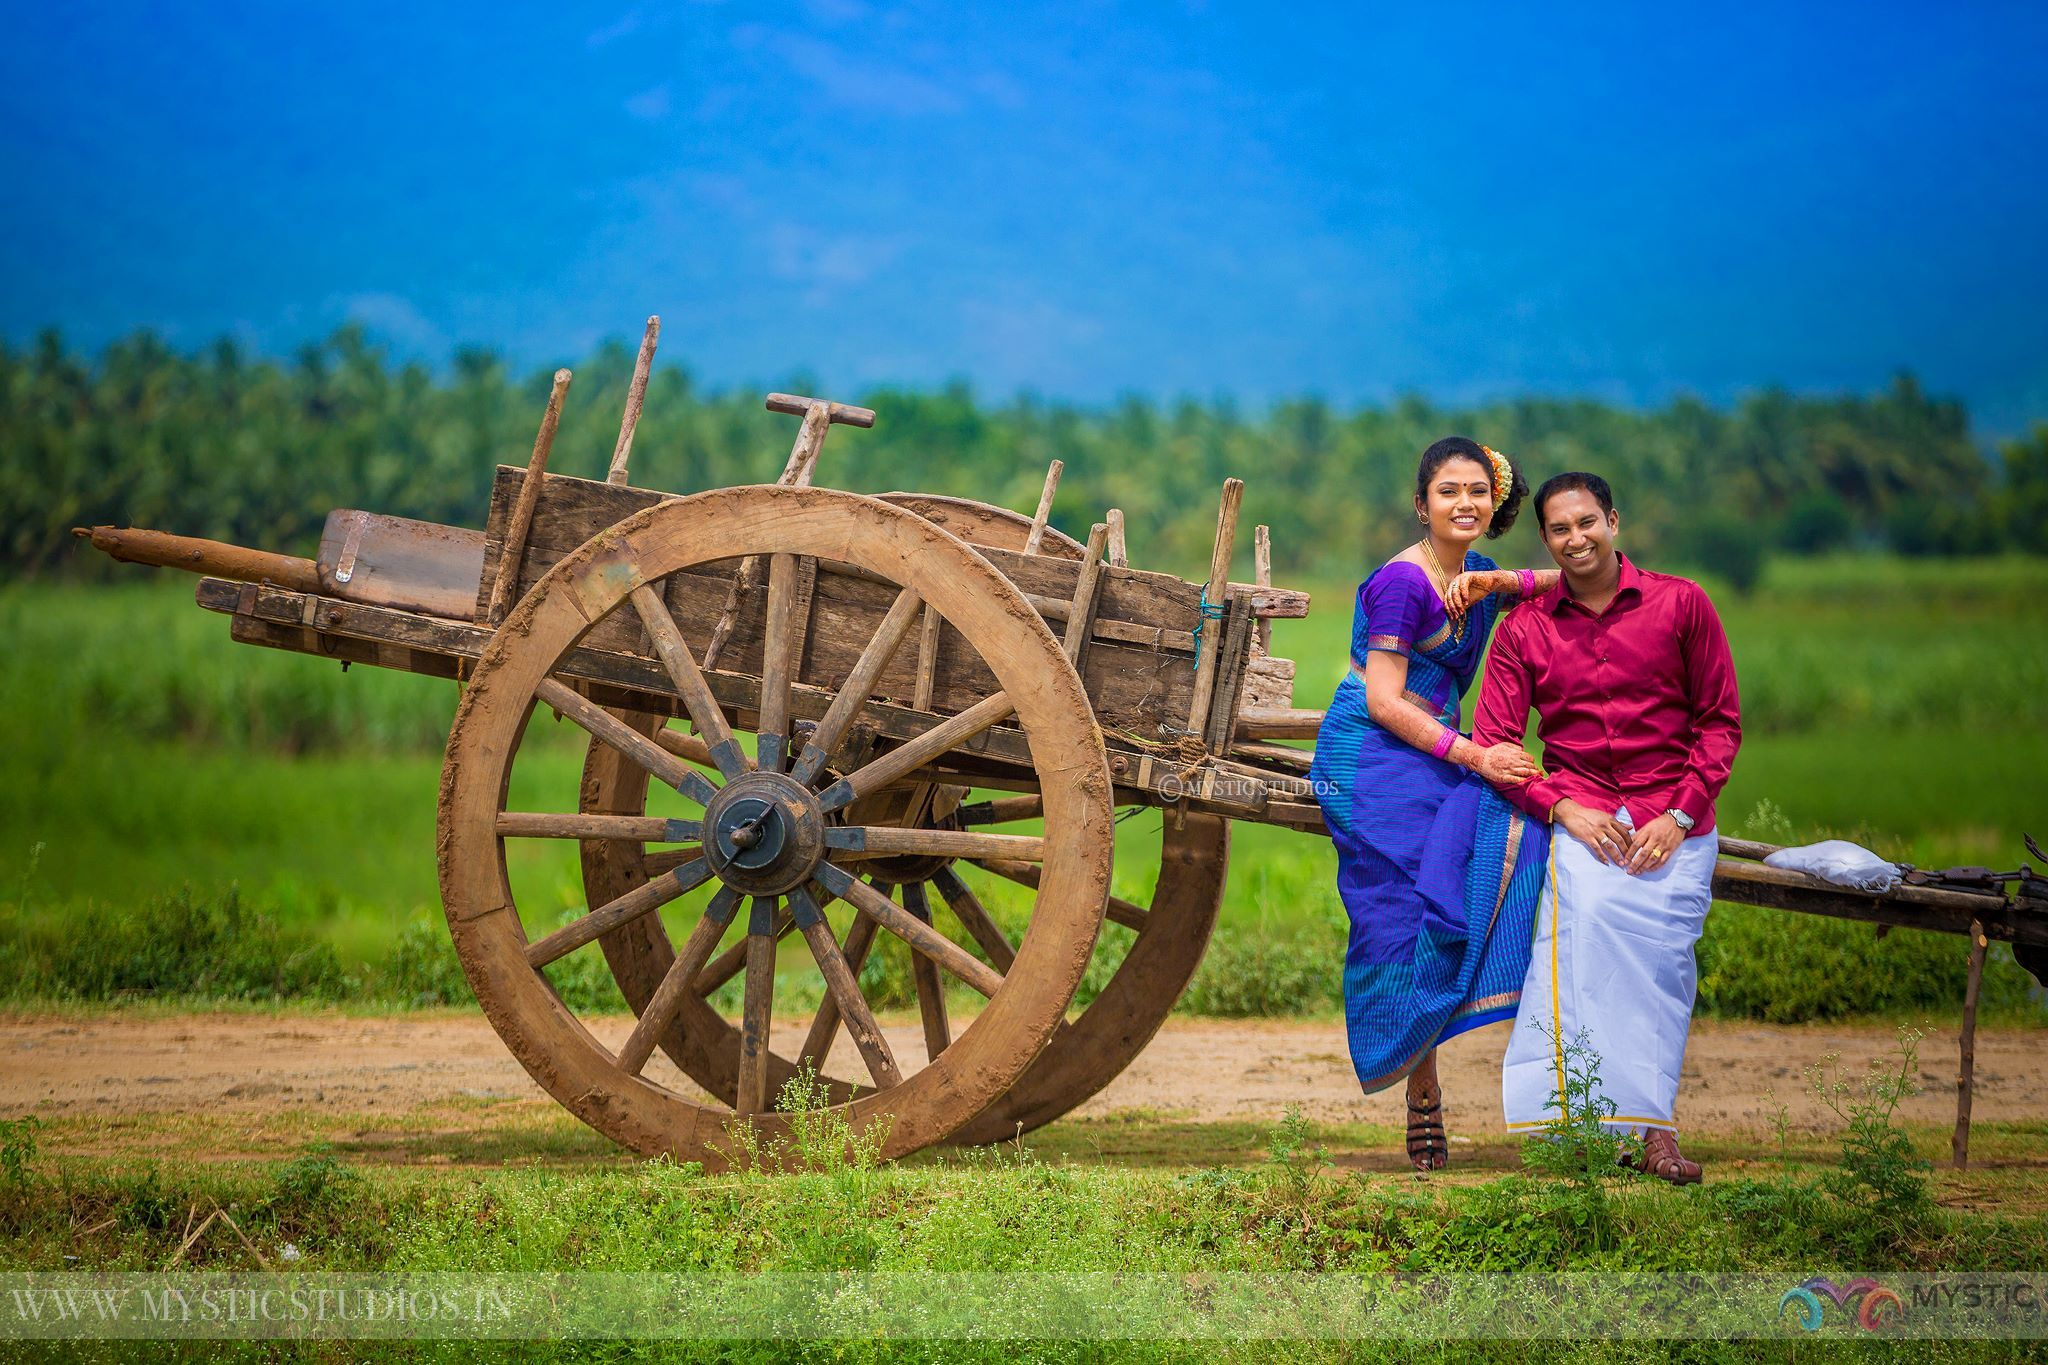 Rhythm of love an interesting journey to village life weddingphotgraphy ezwed photography southindianwedding